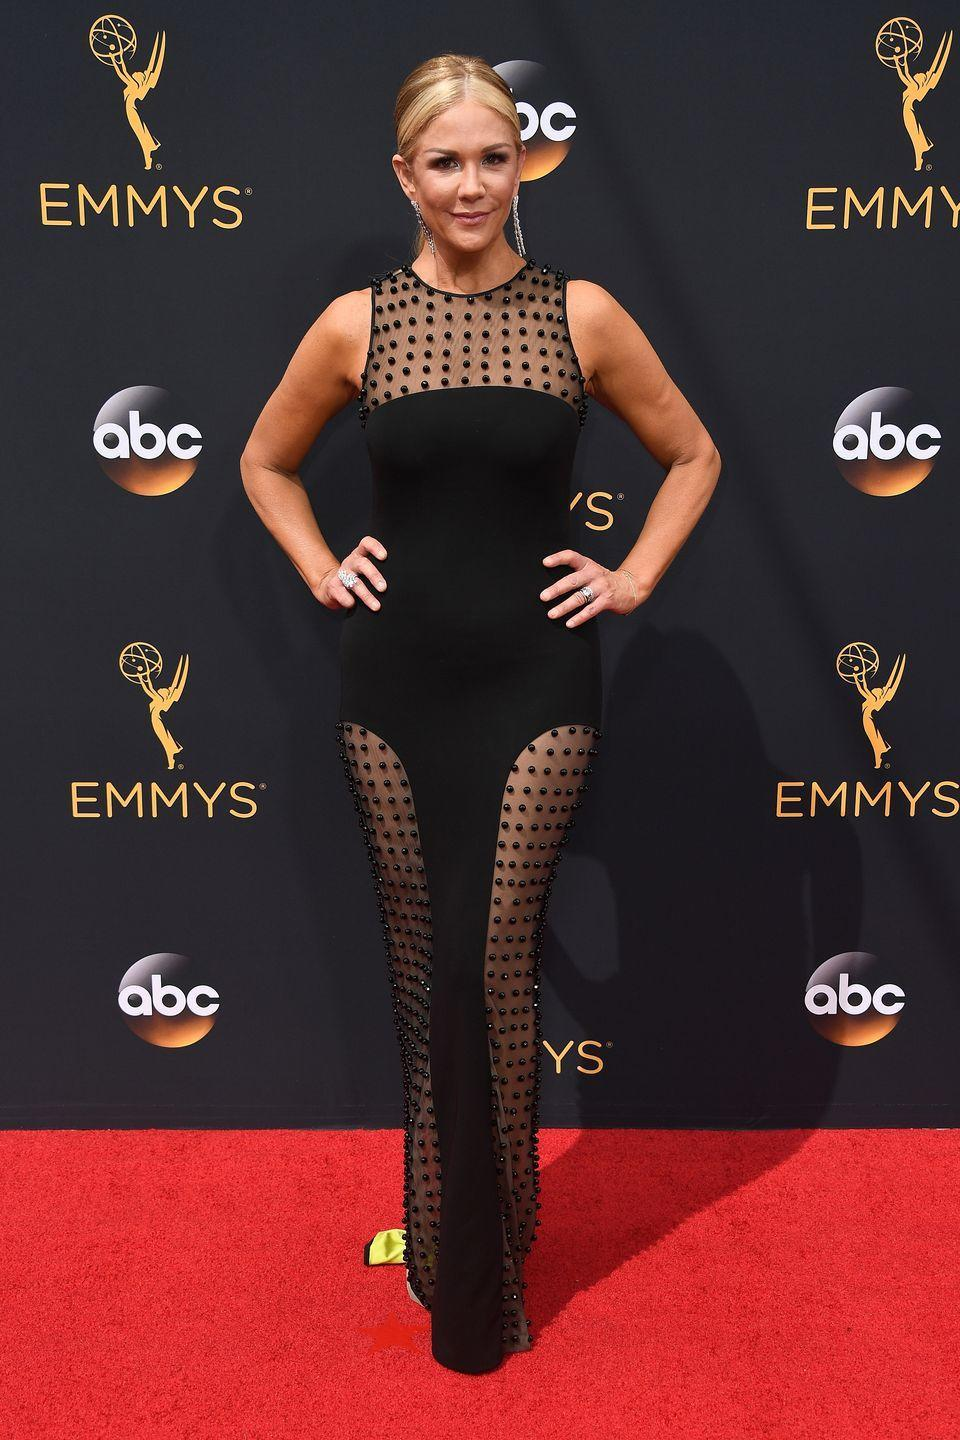 <p>The TV personality took on a different kind of thigh-high slit in this sheer-panelled gown. </p>